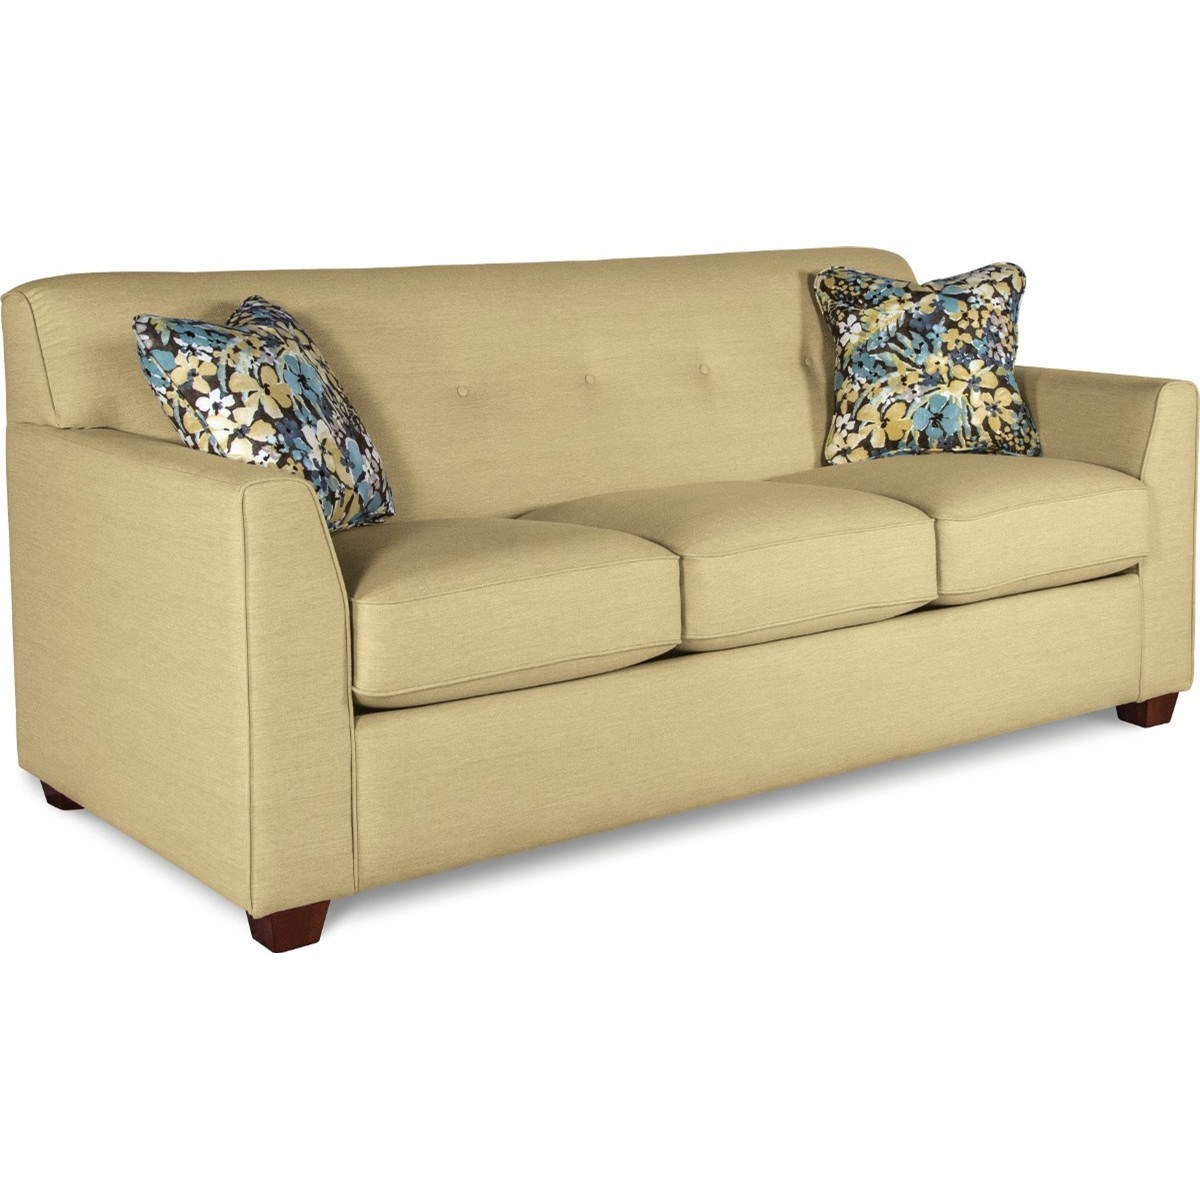 Picture of: La Z Boy Dixie Contemporary Tufted Apartment Sleeper Sofa With Premier Comfortcore Cushions Conlin S Furniture Sleeper Sofas